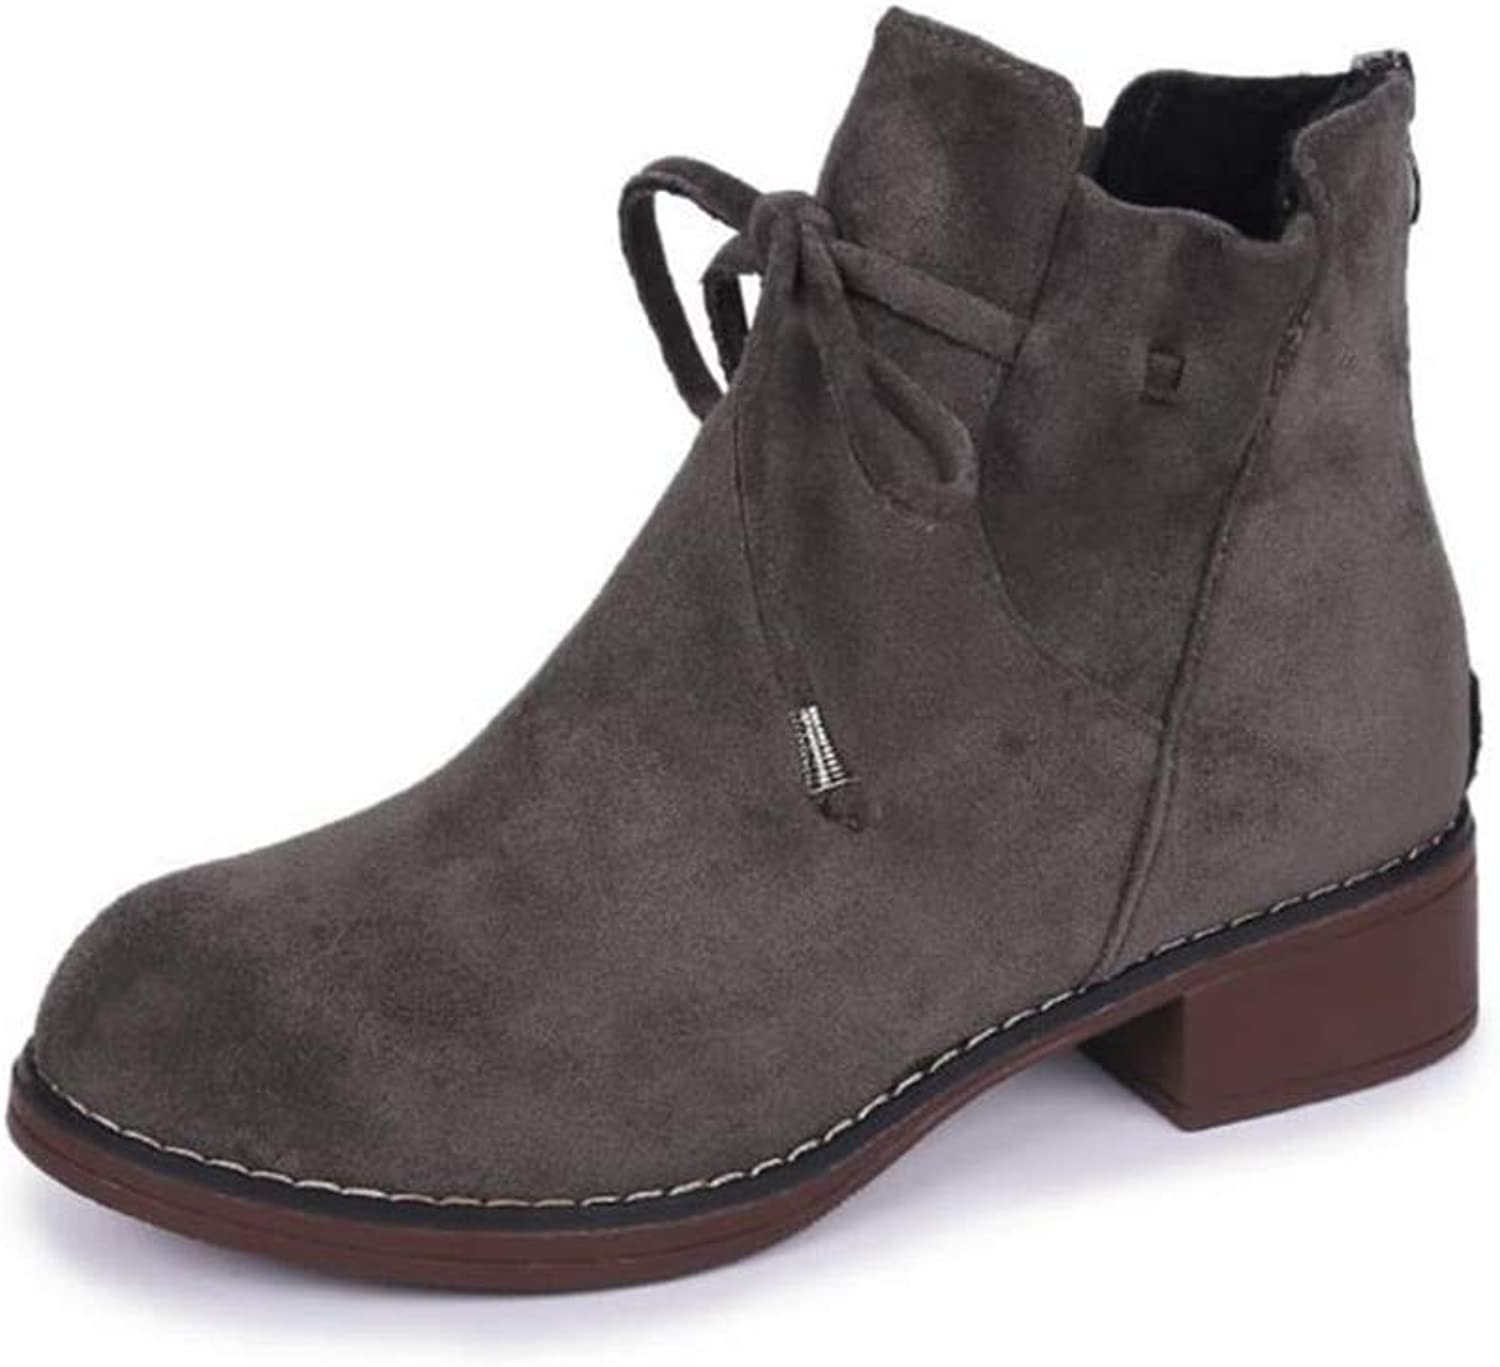 Women Lucky Boot, Womens Fashion High Heel Lace Up Ankle Boots Lady Buckle Platform shoes